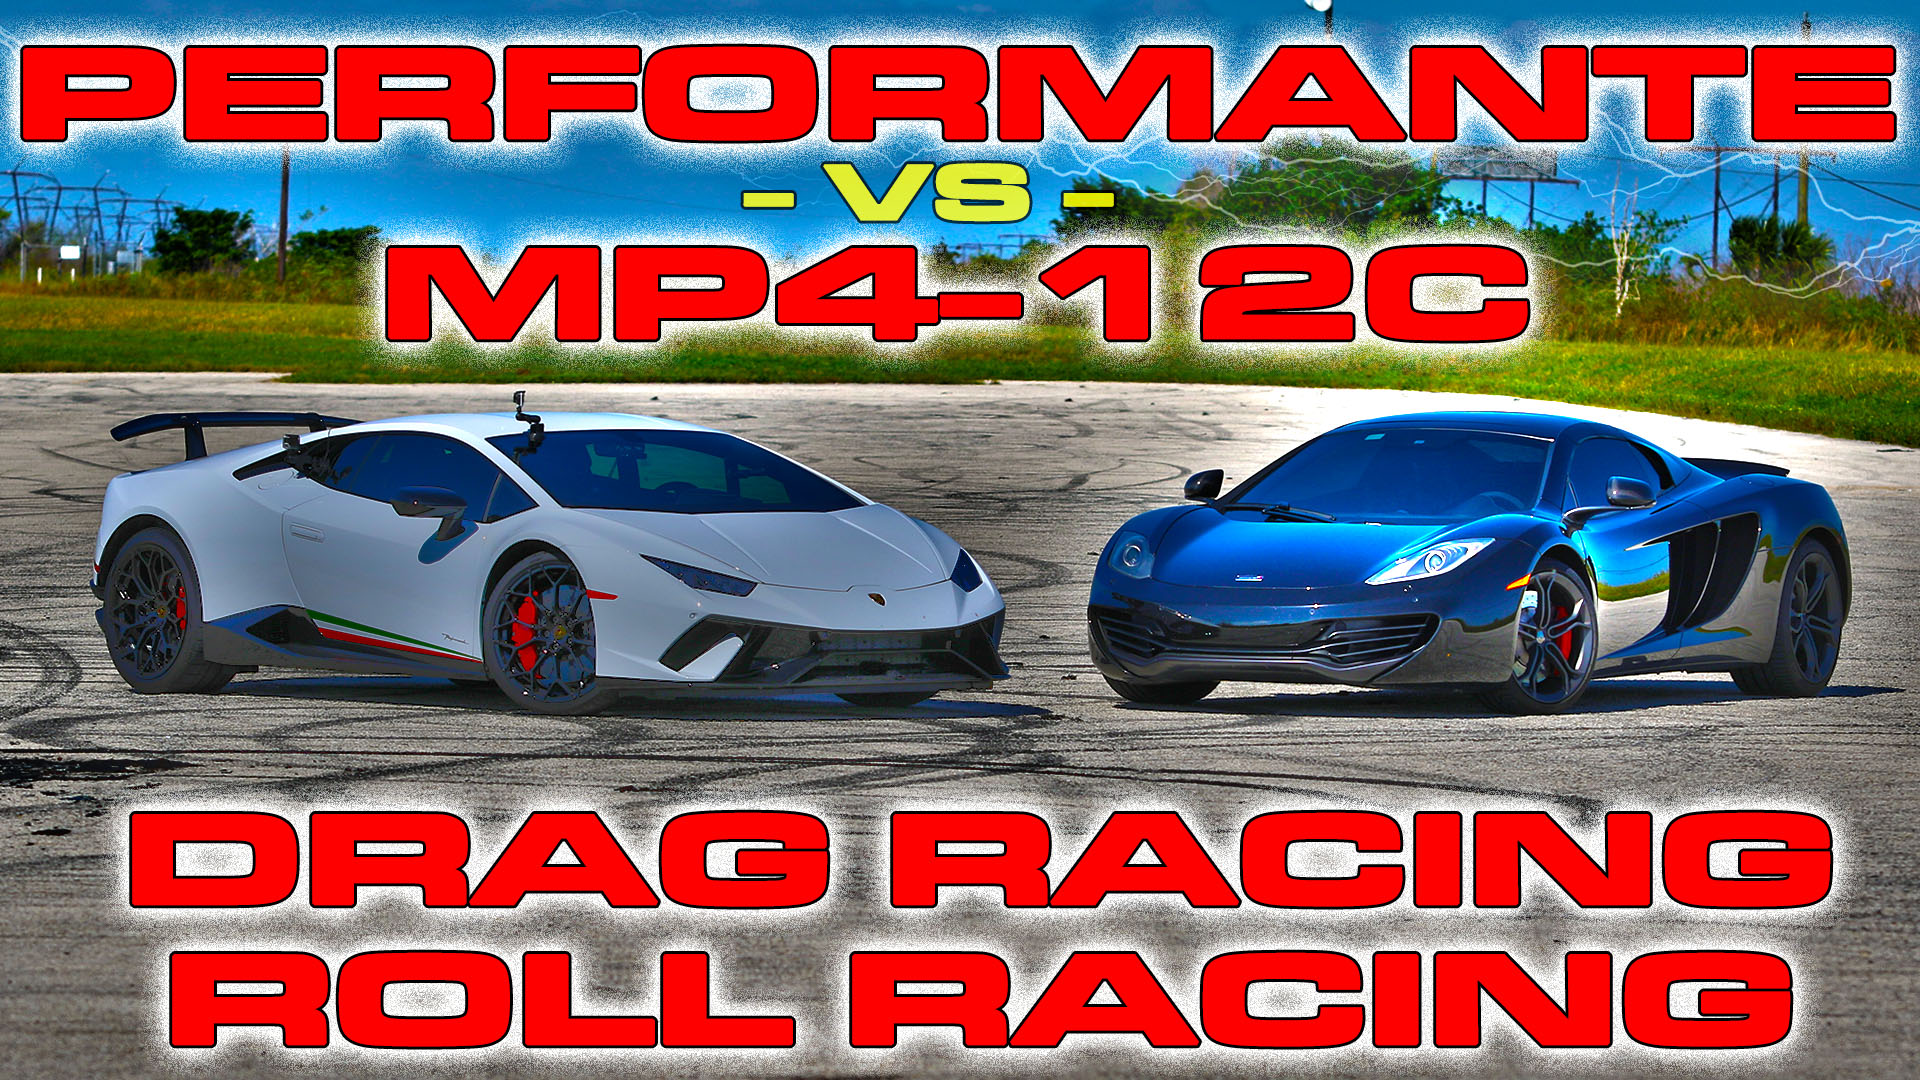 Lamborghini Huracan Performante vs McLaren MP4-12C